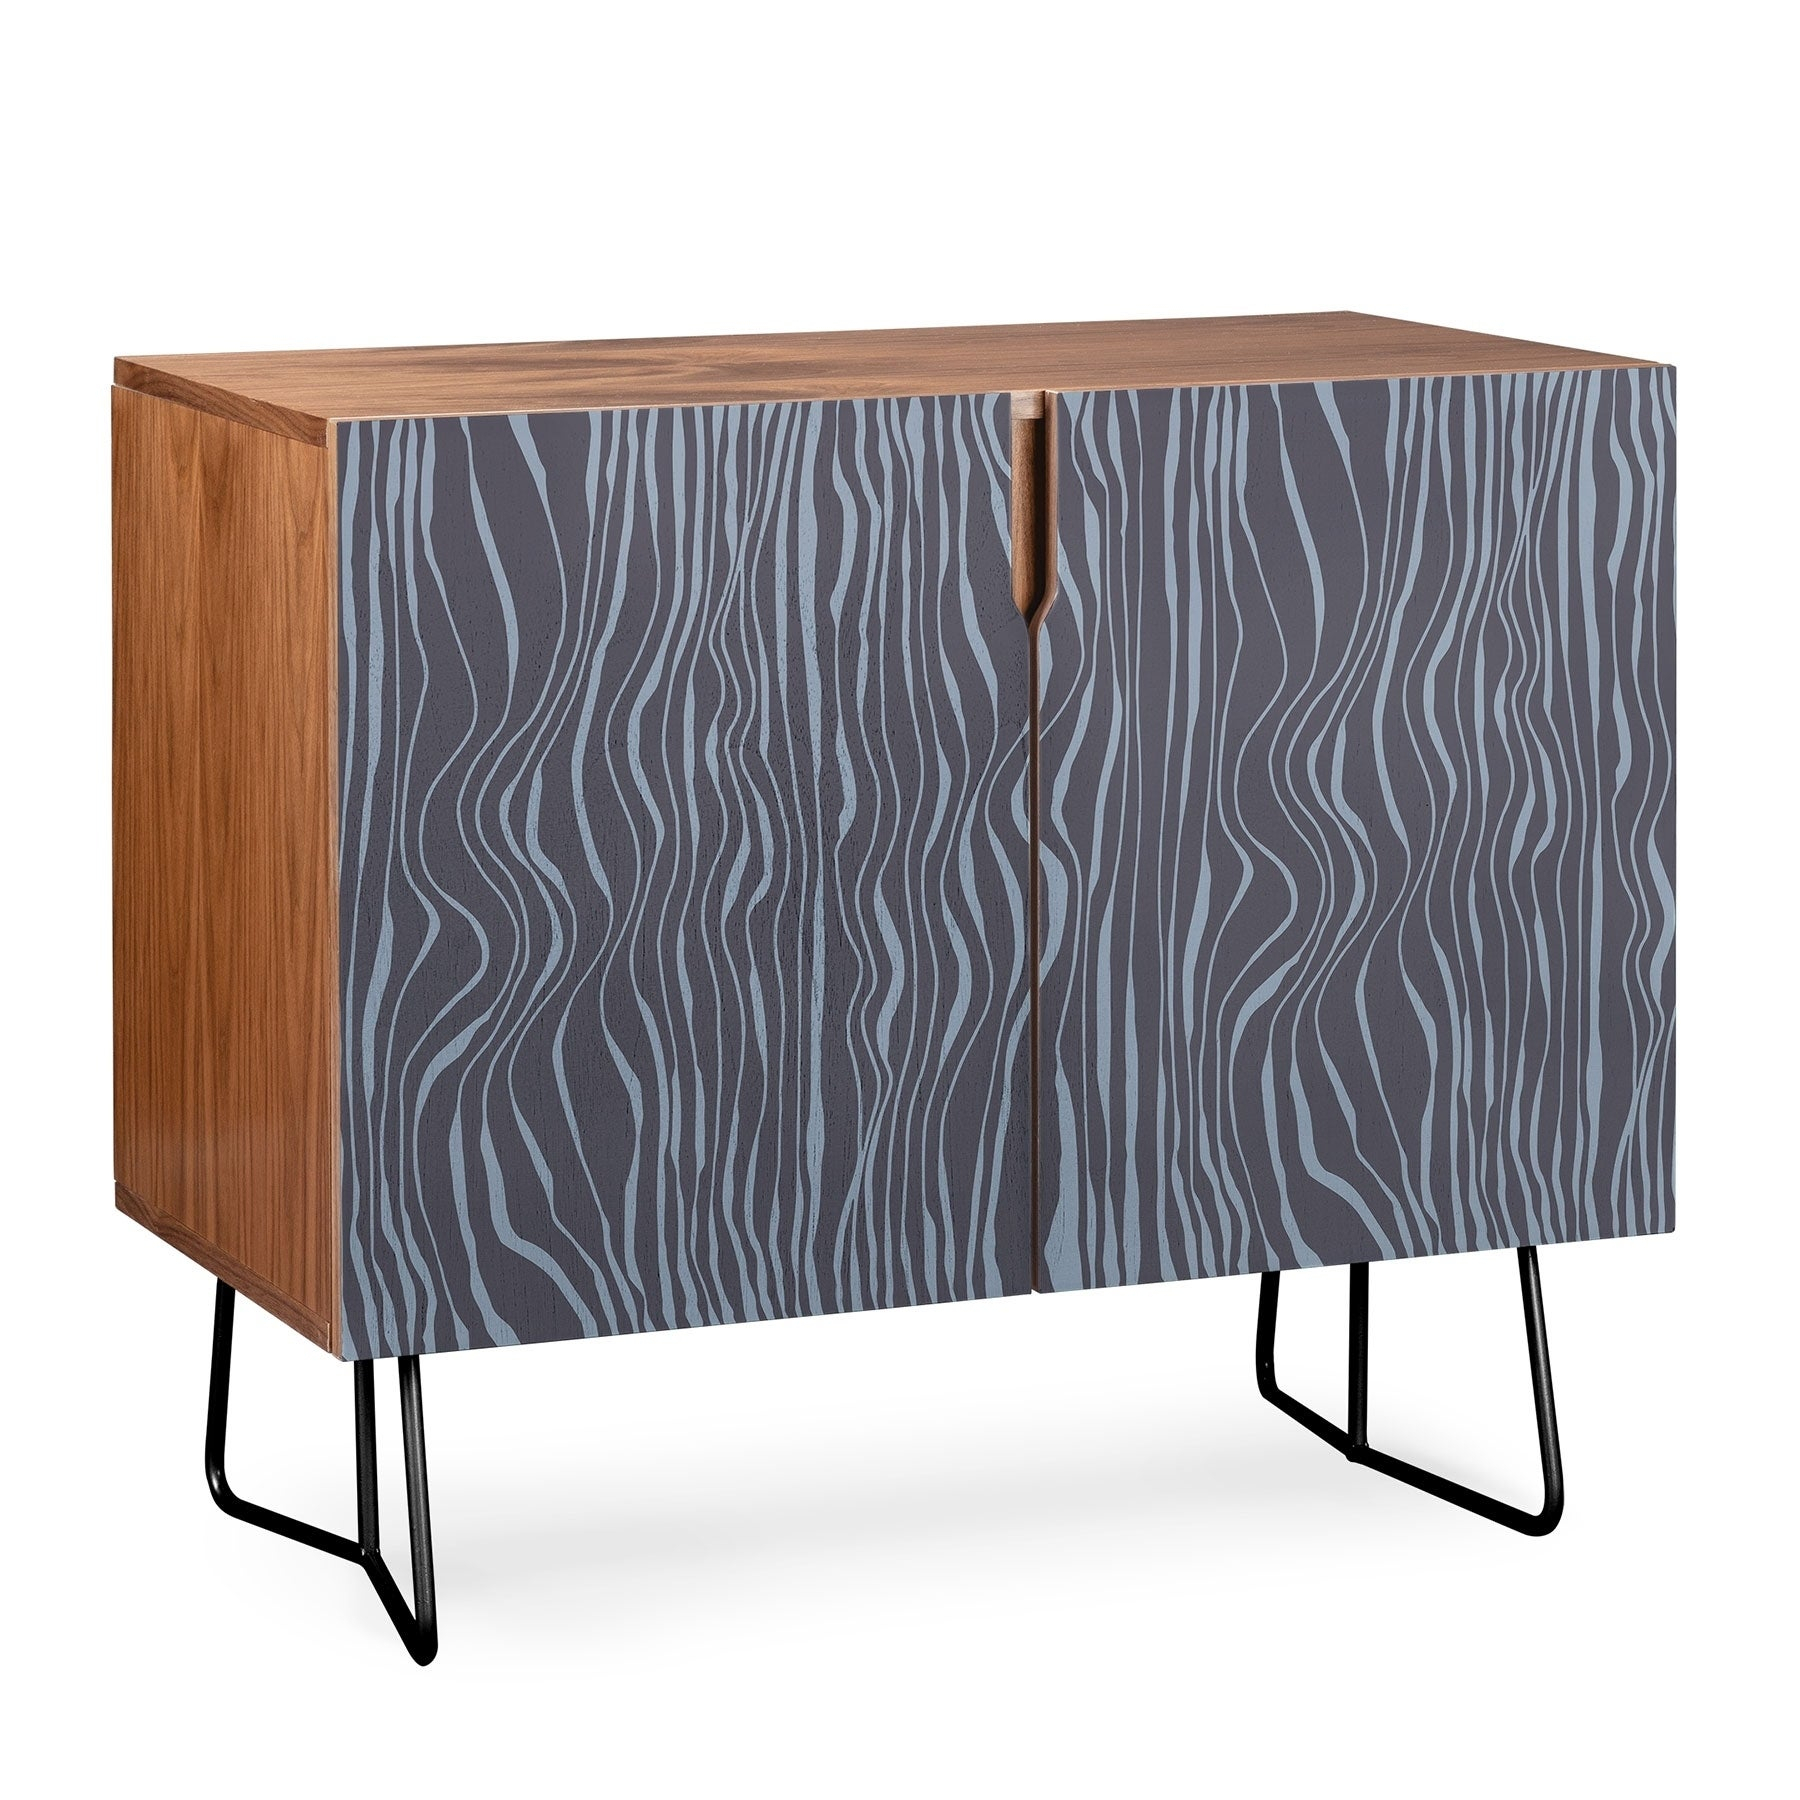 Deny Designs Wavy Stripes Credenza (Birch Or Walnut, 2 Leg Options) regarding Multi Stripe Credenzas (Image 12 of 30)